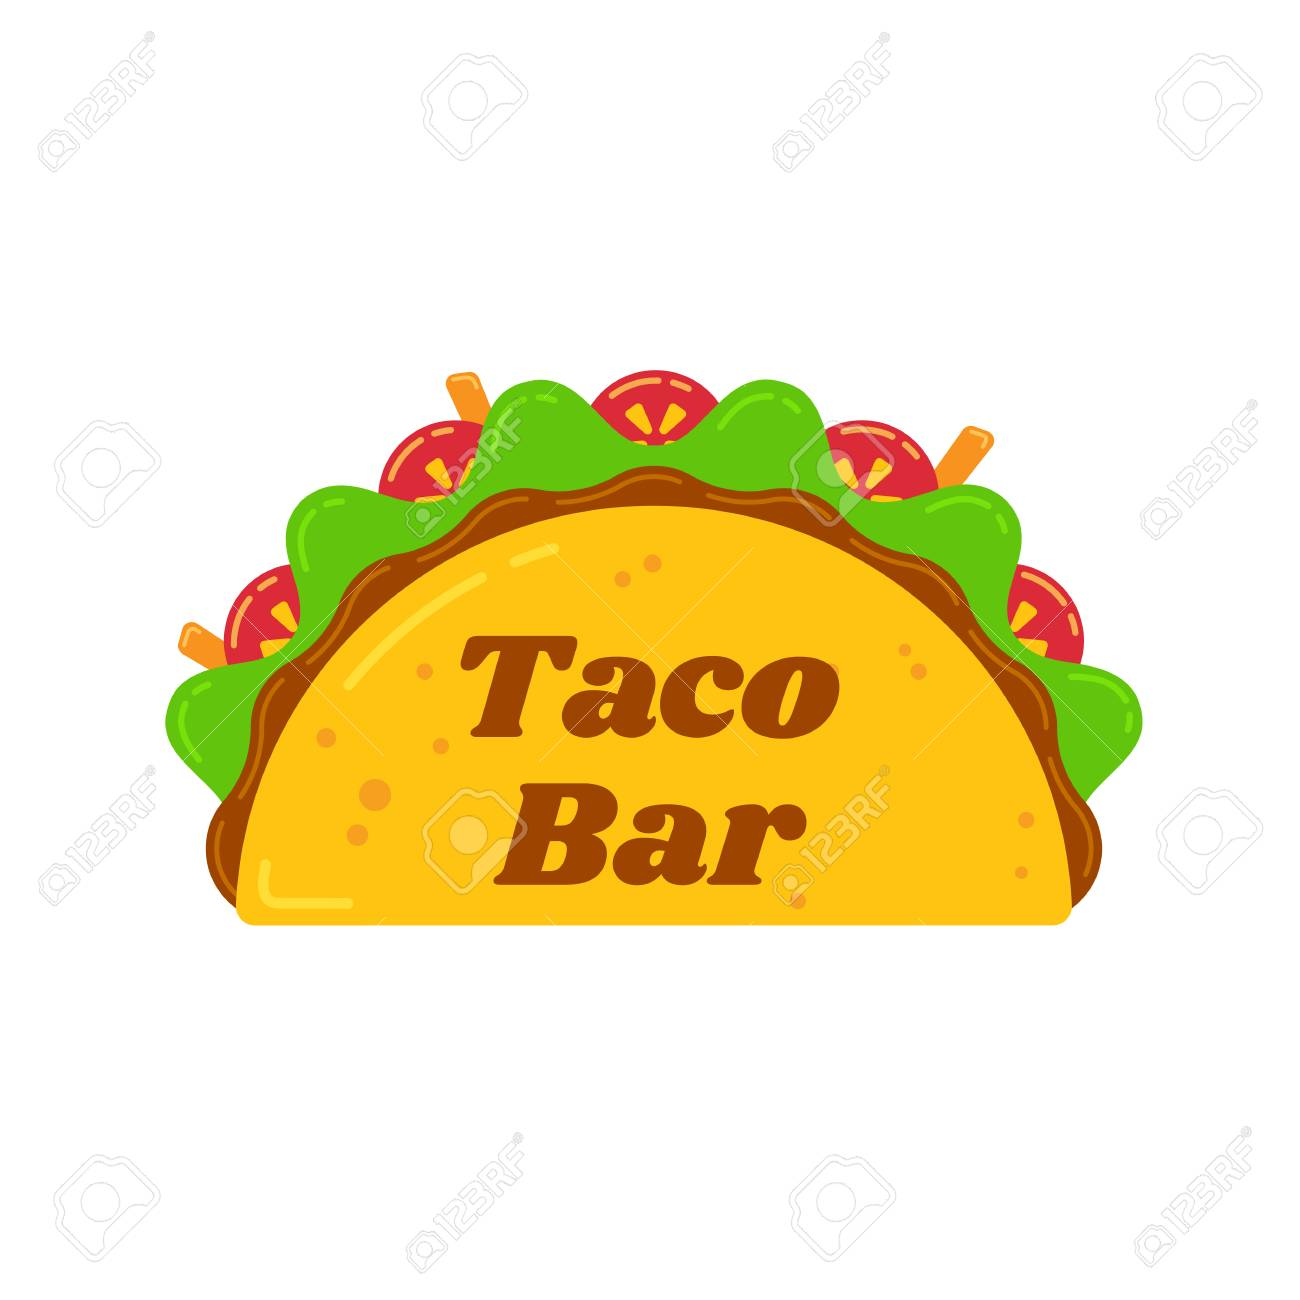 Traditional Mexican Tacos Food Bar Isolated Illustration Spicy Royalty Free Cliparts Vectors And Stock Illustration Image 109467824